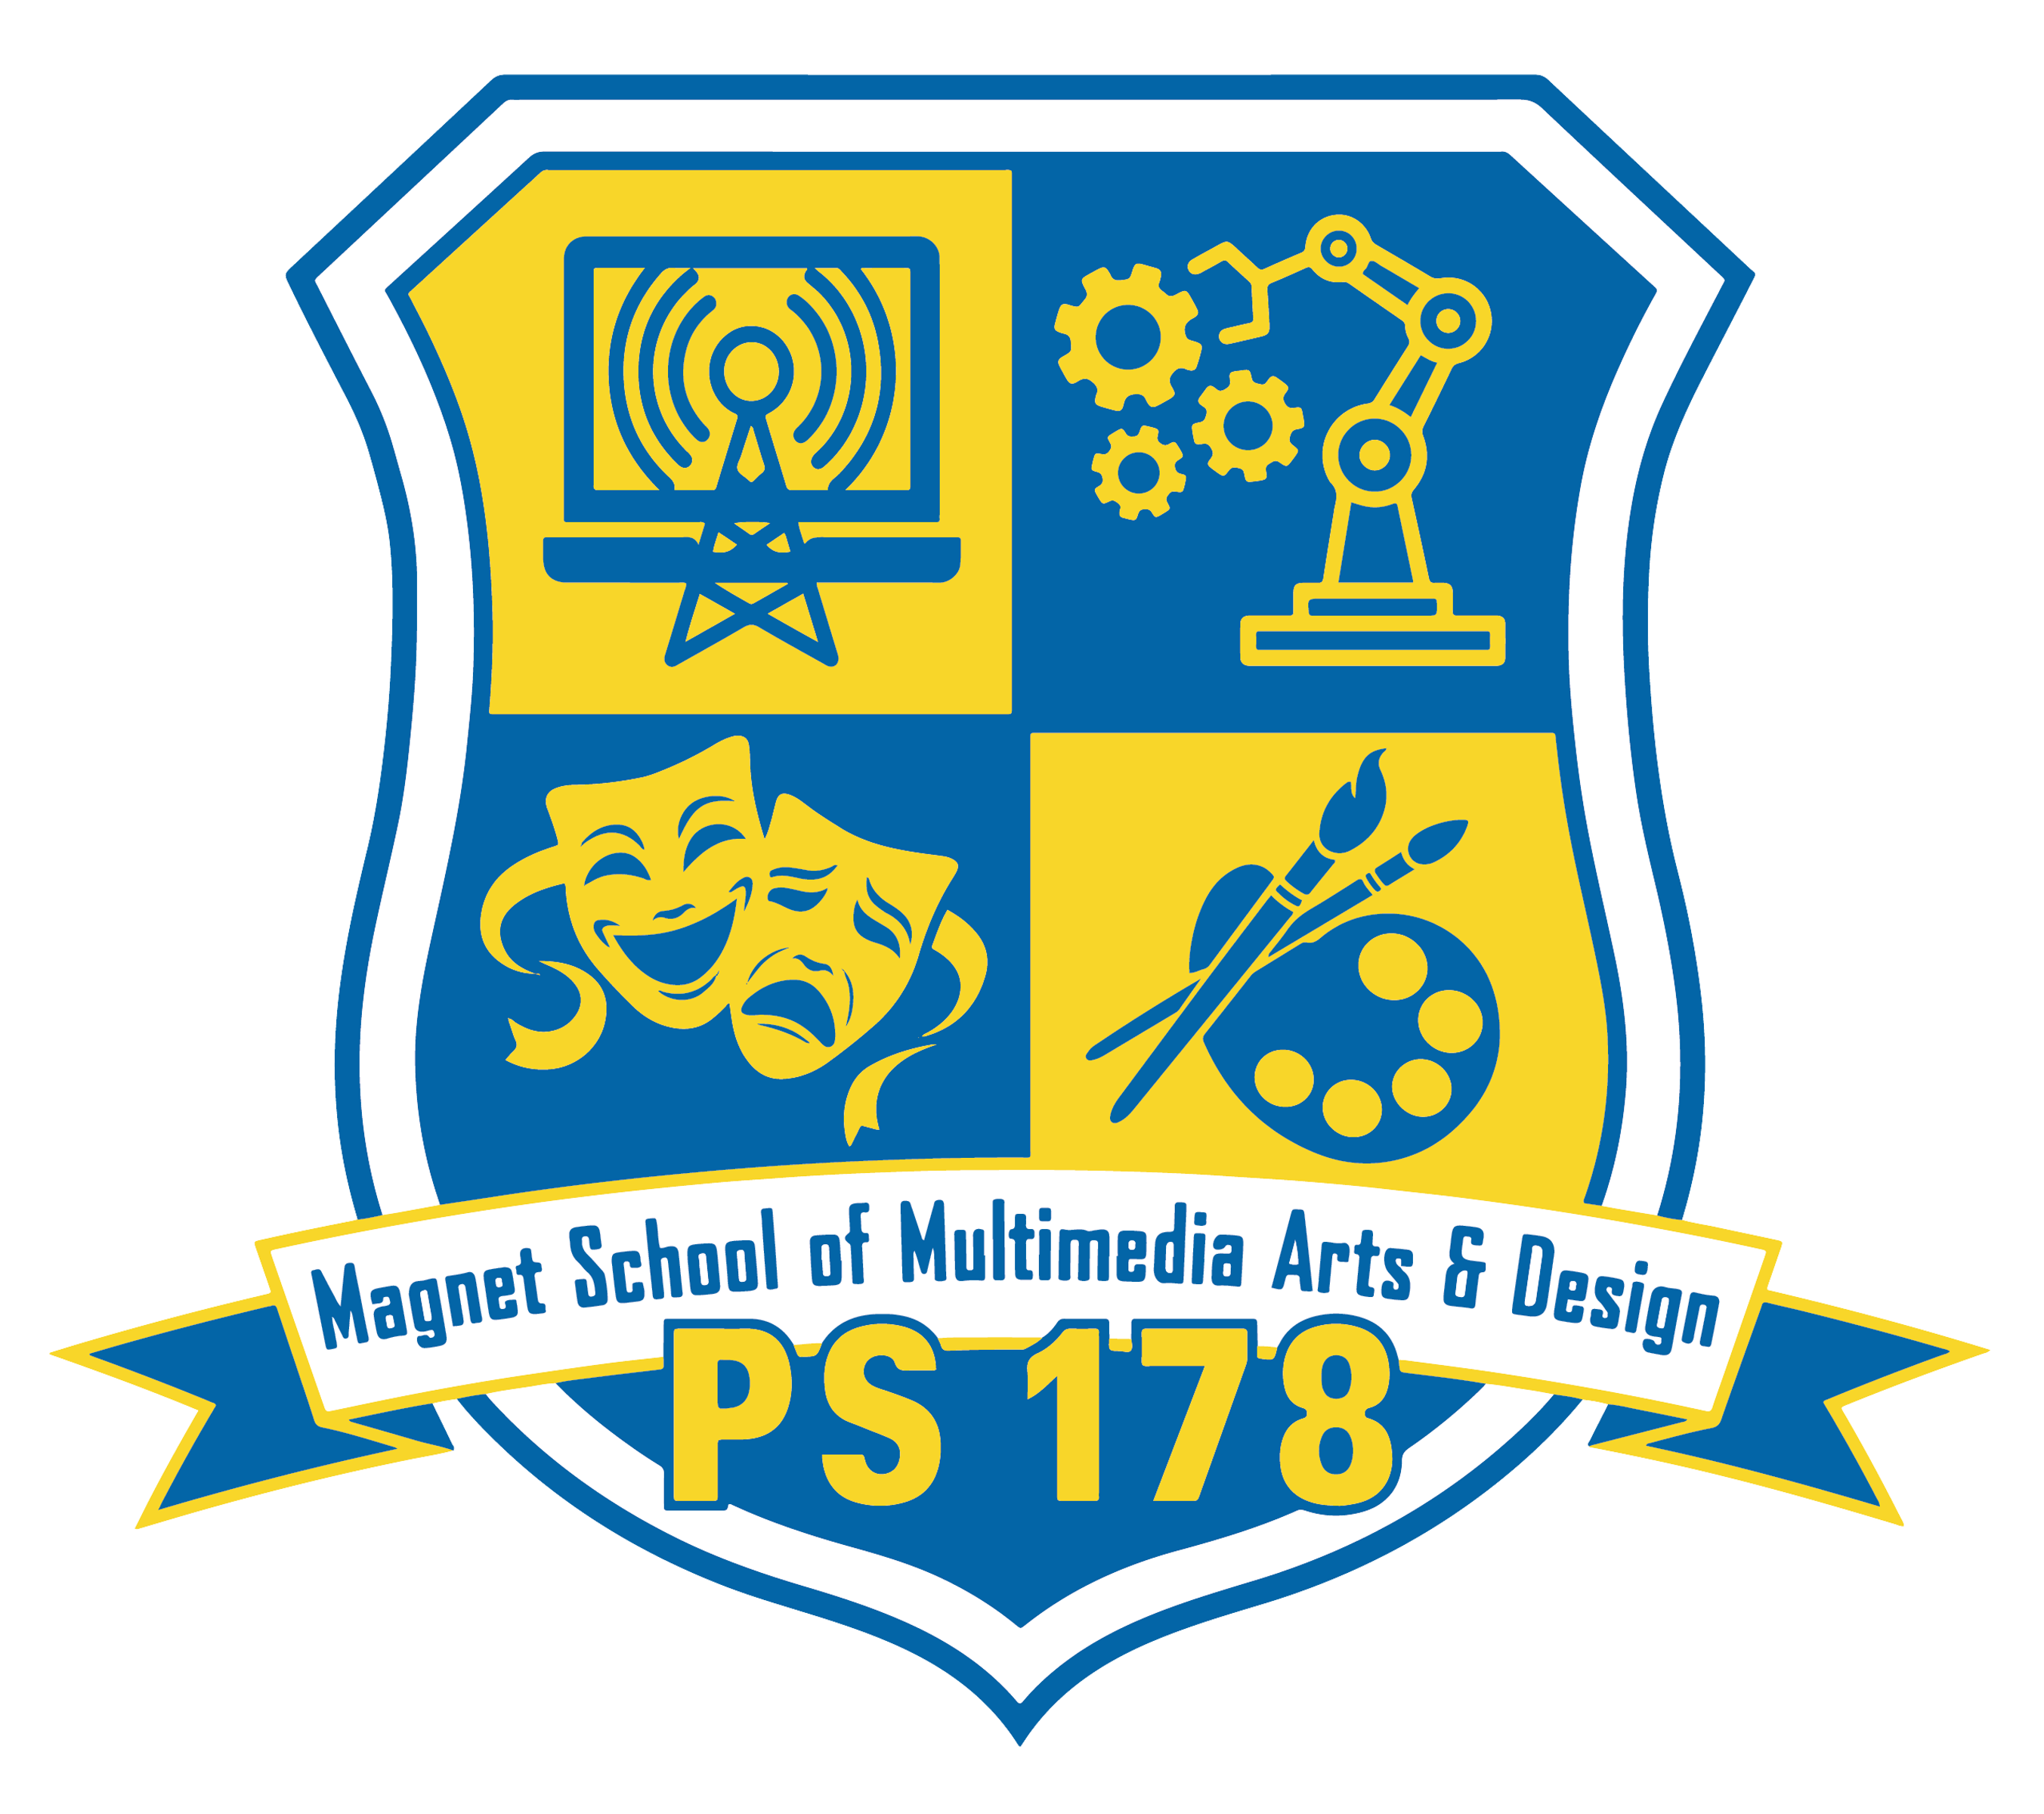 PS 178 Magnet School of Multimedia Arts & Design Home Page